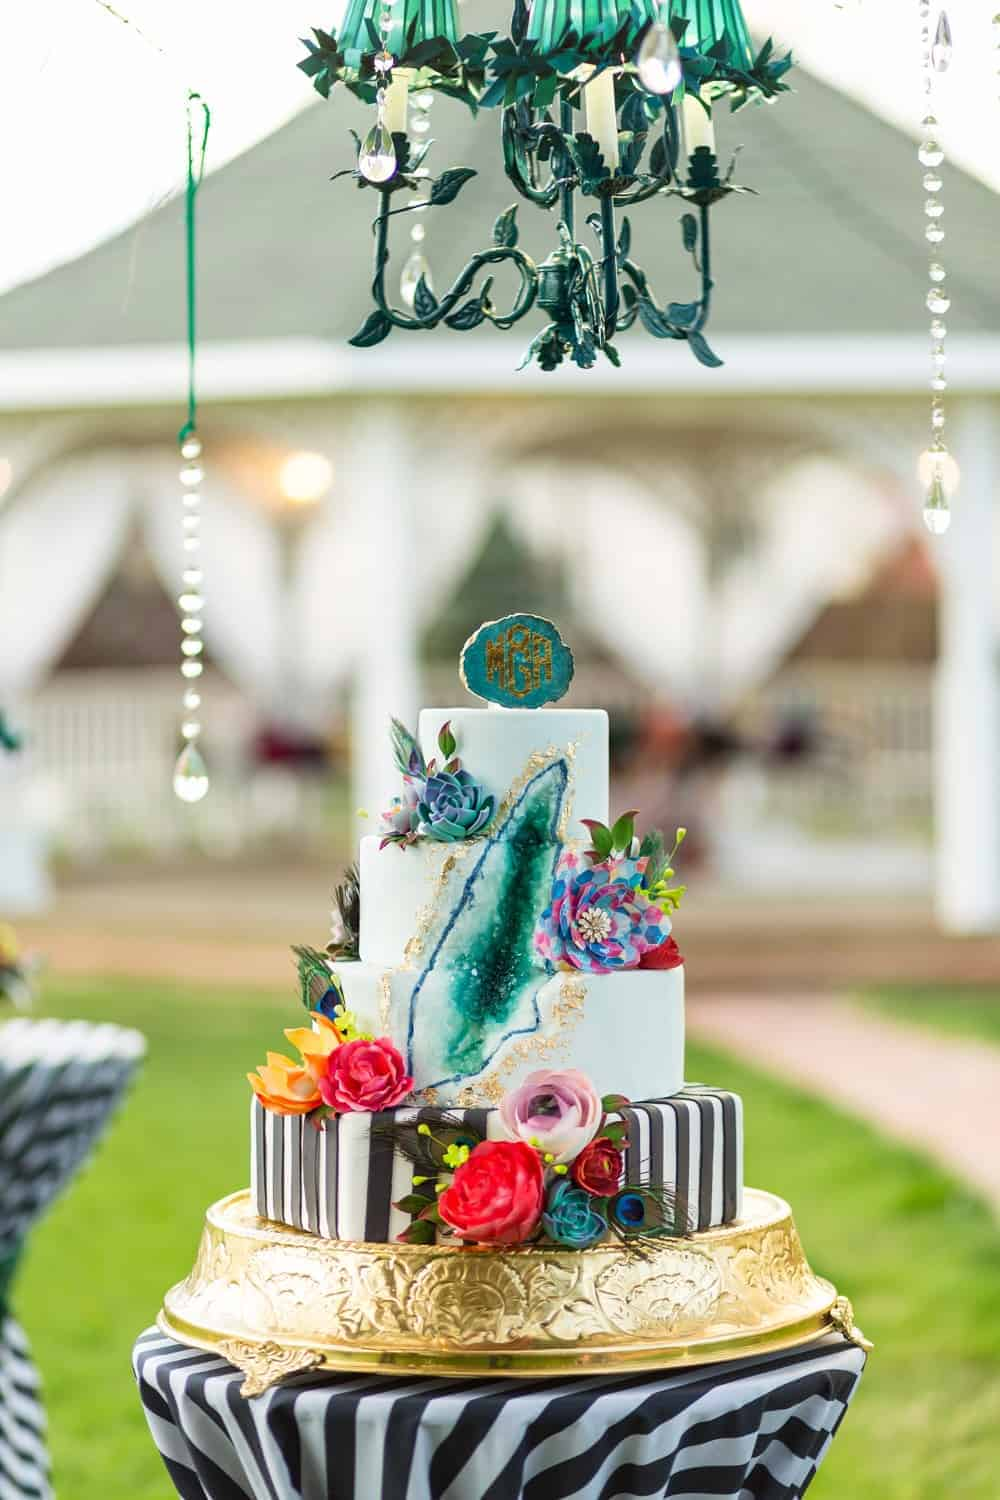 Bohemian Wedding Cake with Geode and Stripes